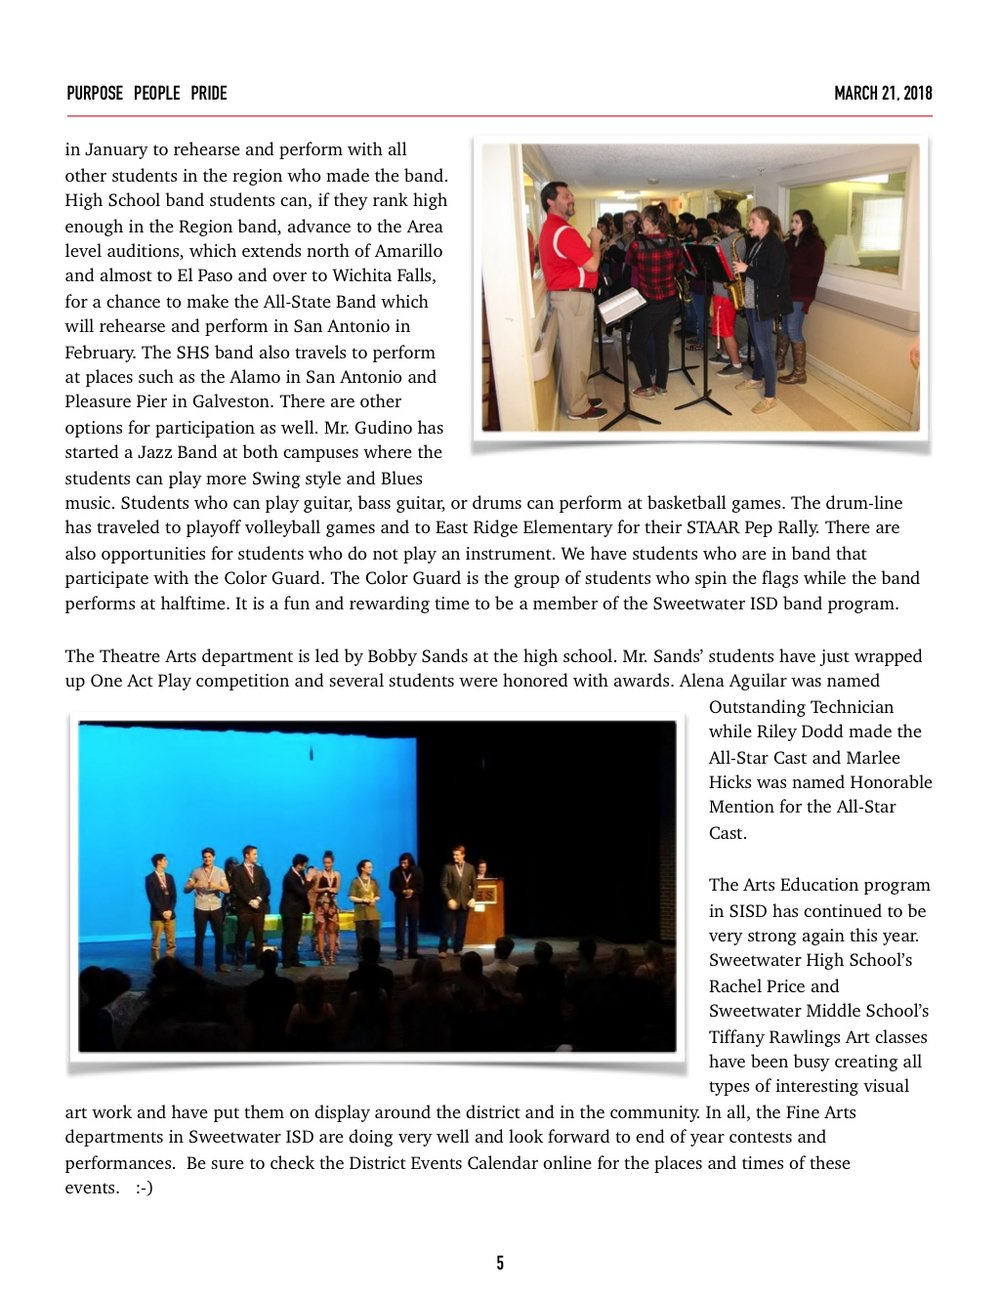 March 2018 Newsletter Page 5 Image